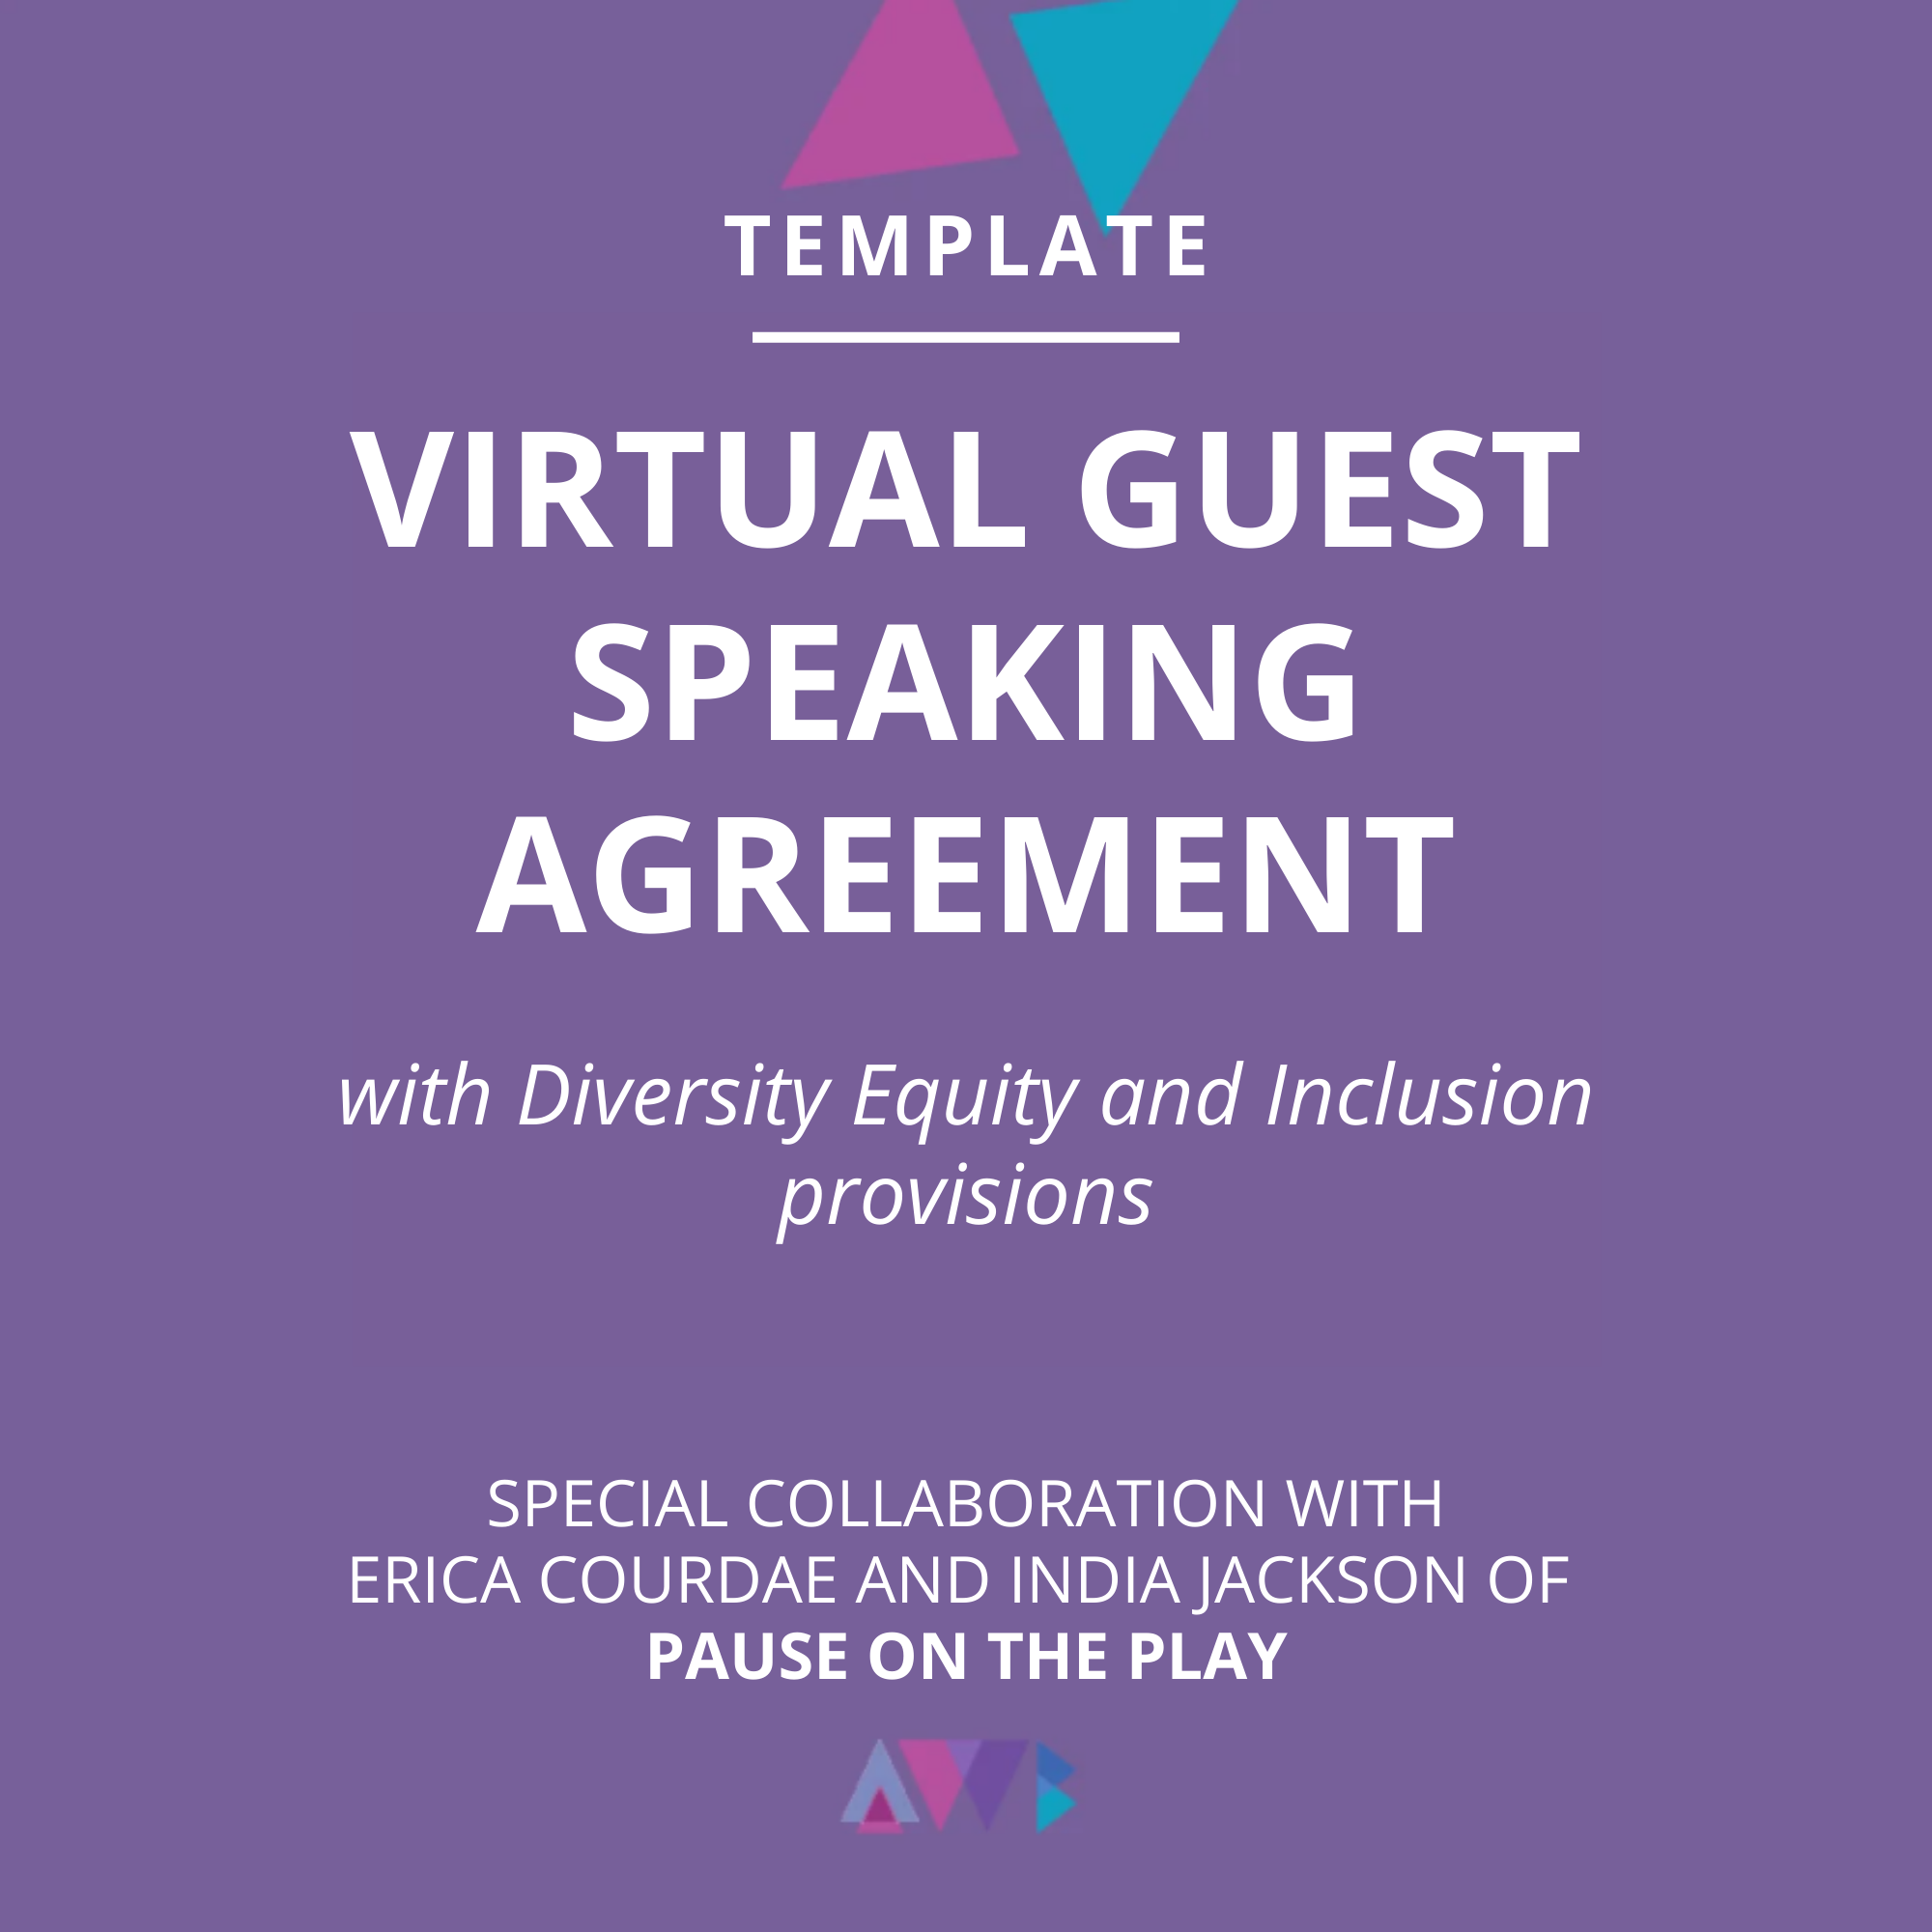 virtual guest speaking agreement diversity equity inclusion erica courdae india jackson pause on the play